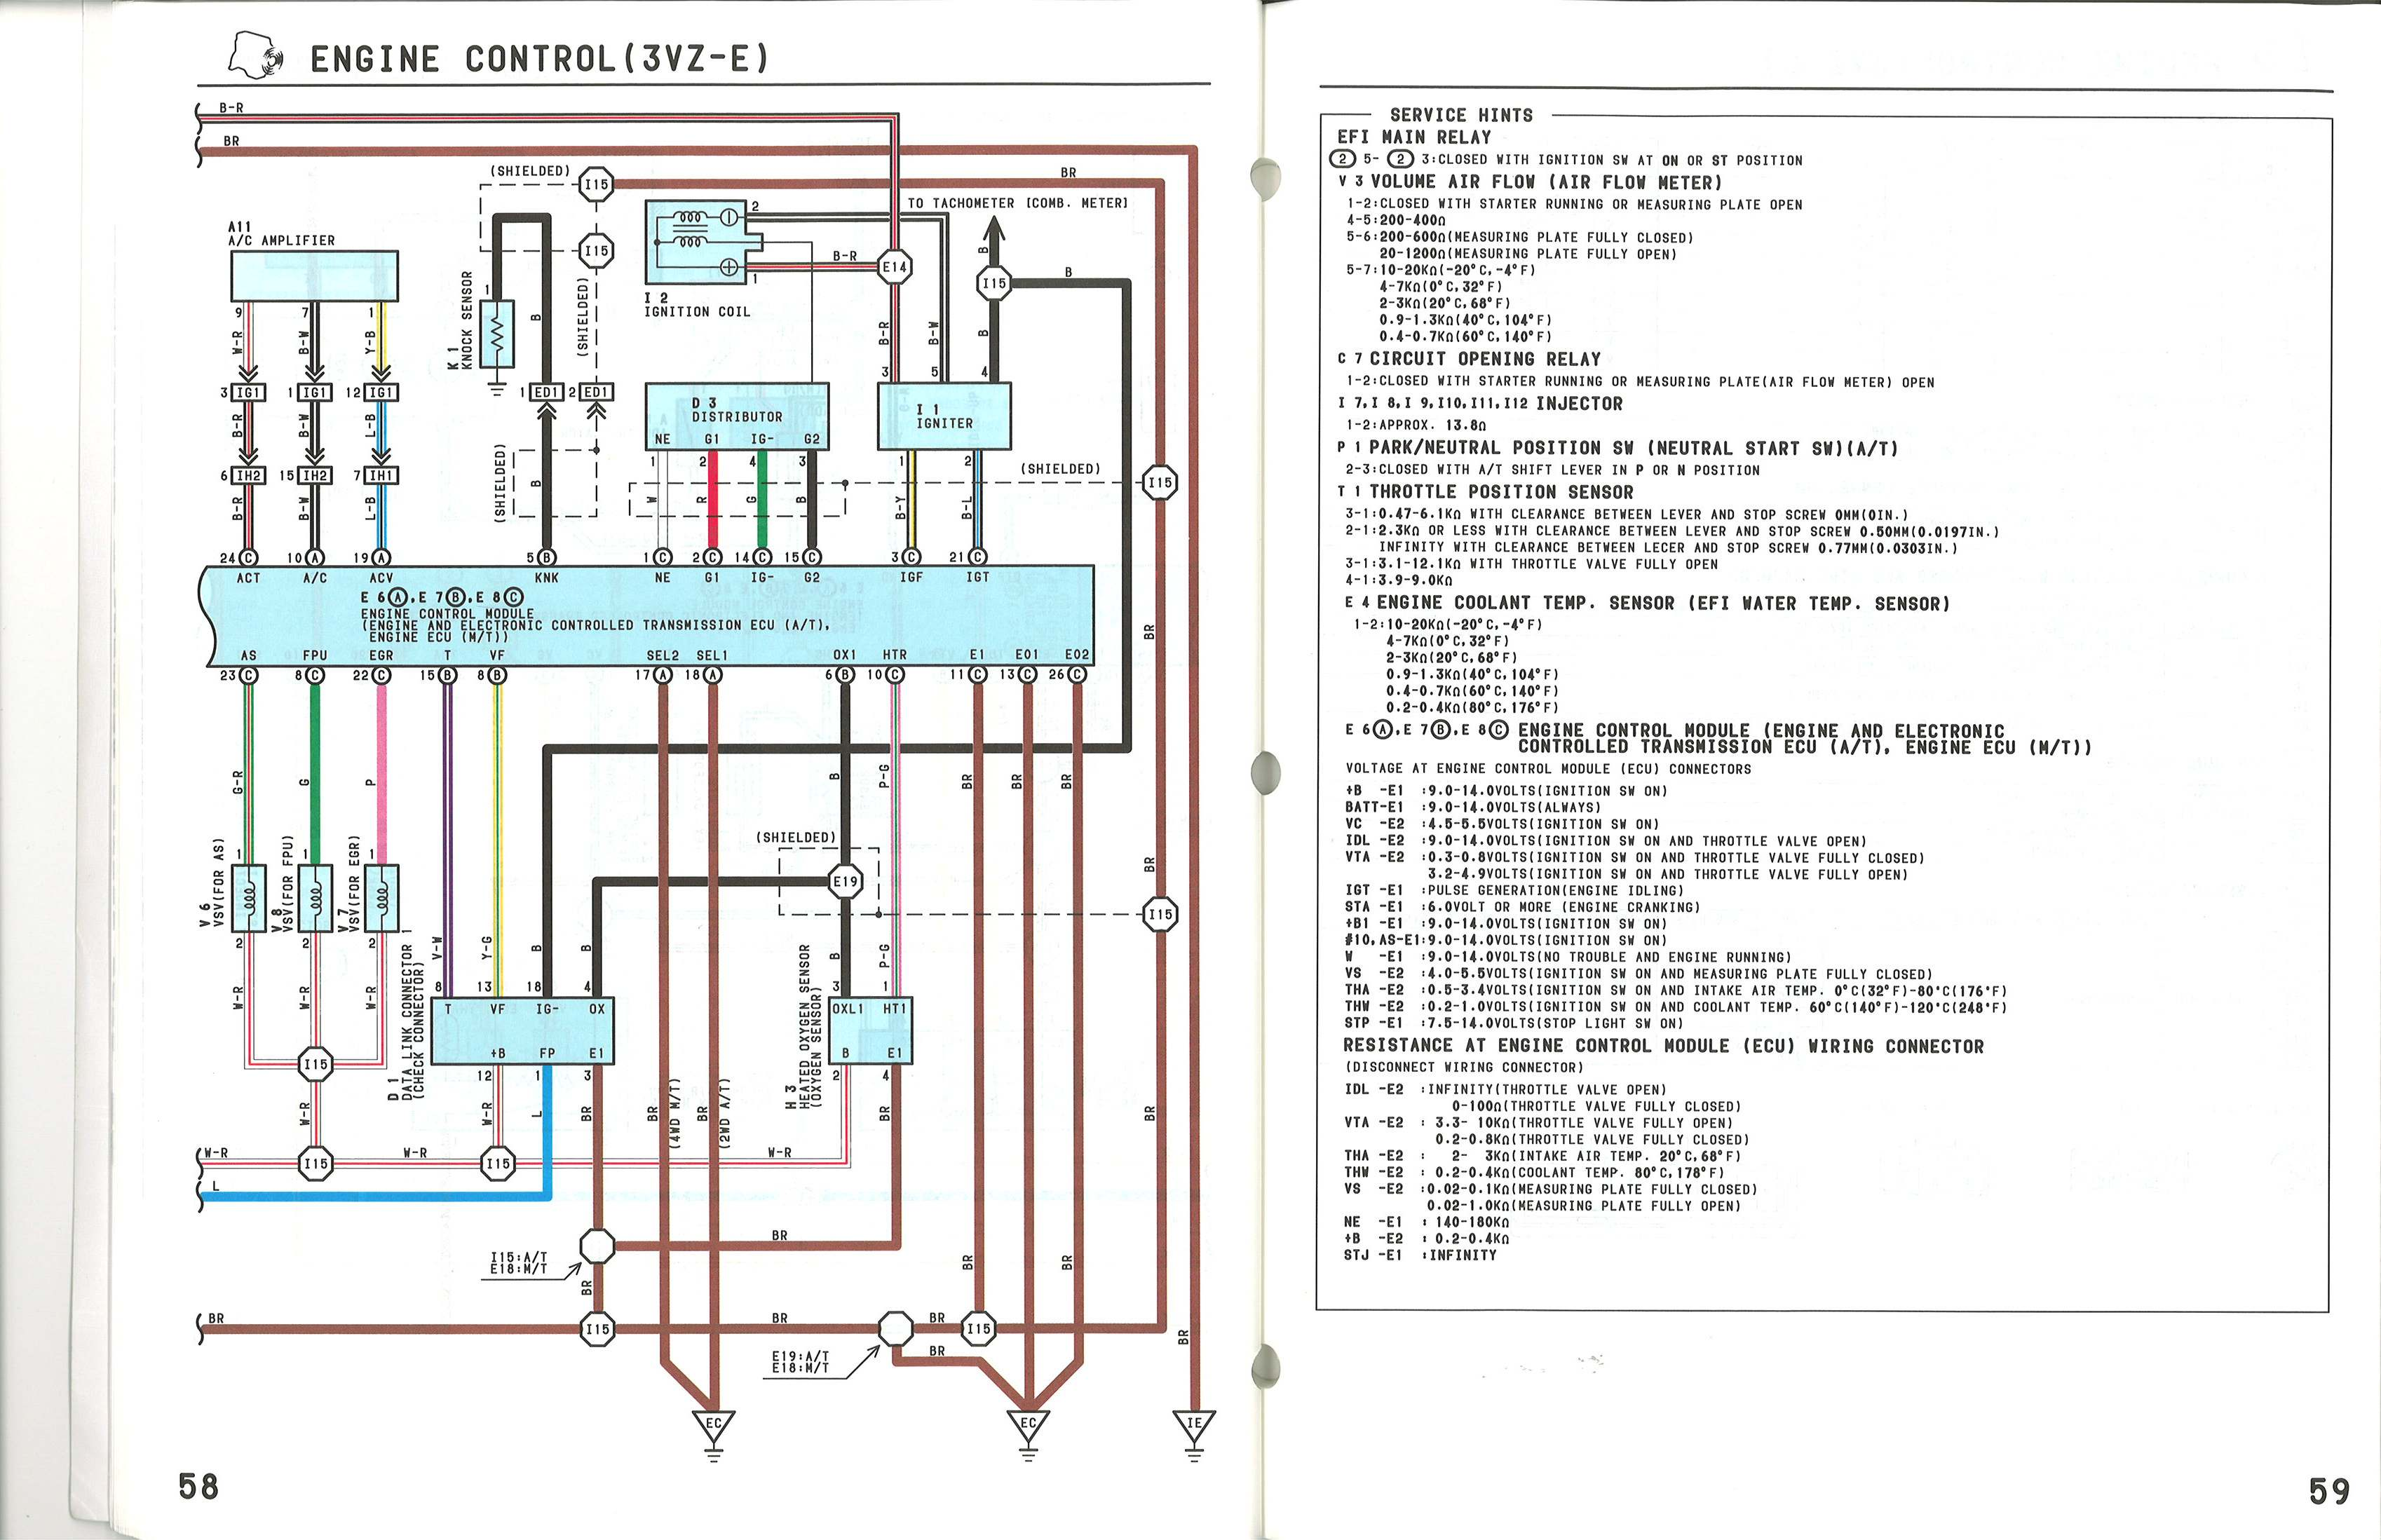 1990 Toyota Pickup 3vze Wiring Diagram Another Diagrams 89 Jeep Fuse Box Ecu For 1988 3vz E Yotatech Forums Rh Com 1989 1985